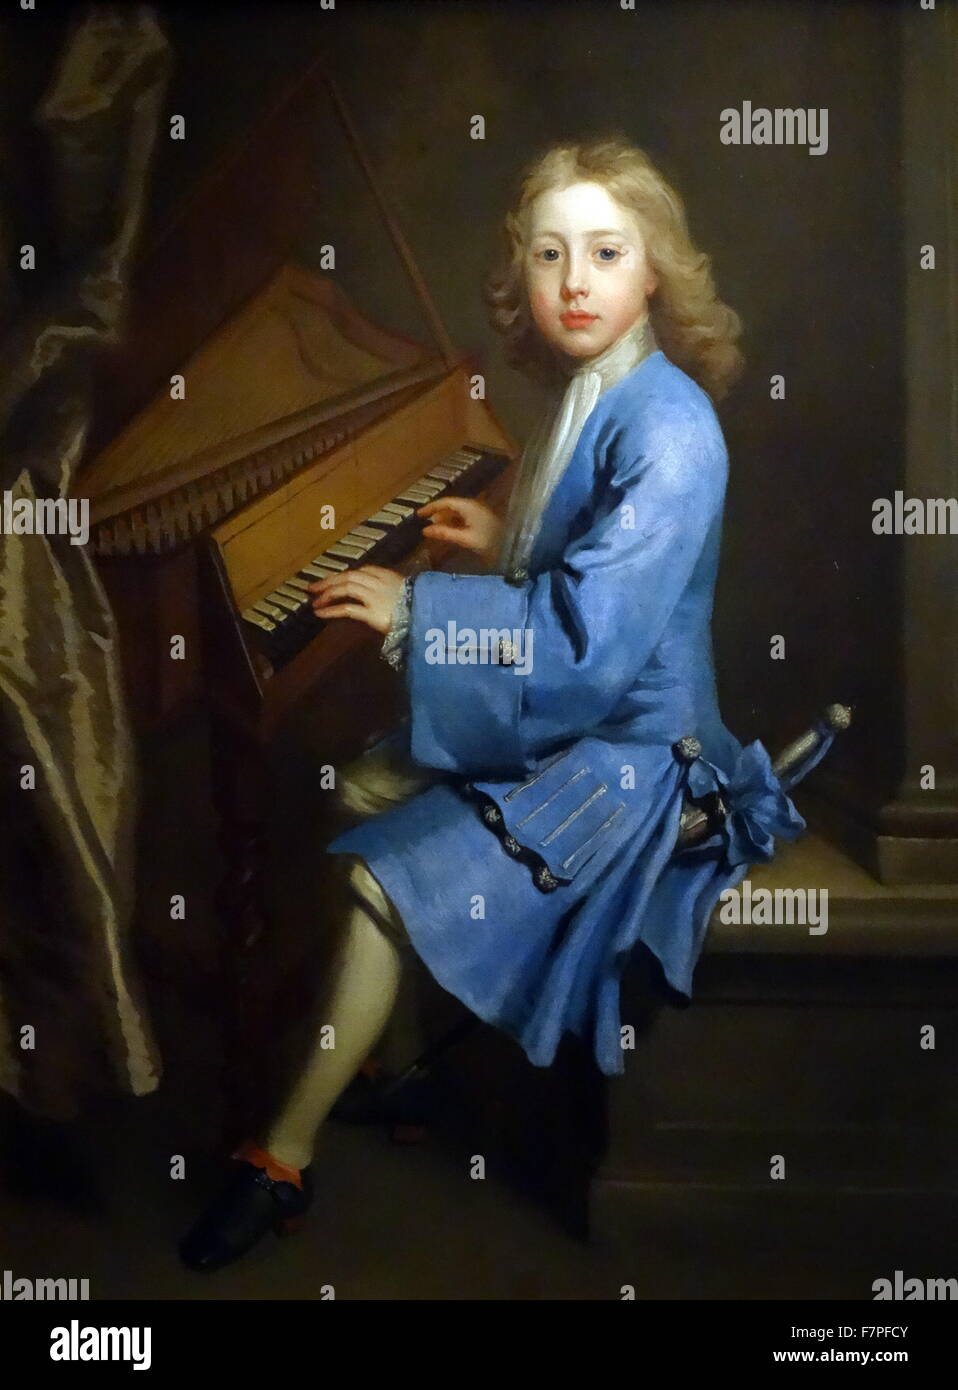 Garton Orme at the Spinet, 1705-8, by Jonathan Richardson the Elder (about 1665-1745) - Stock Image